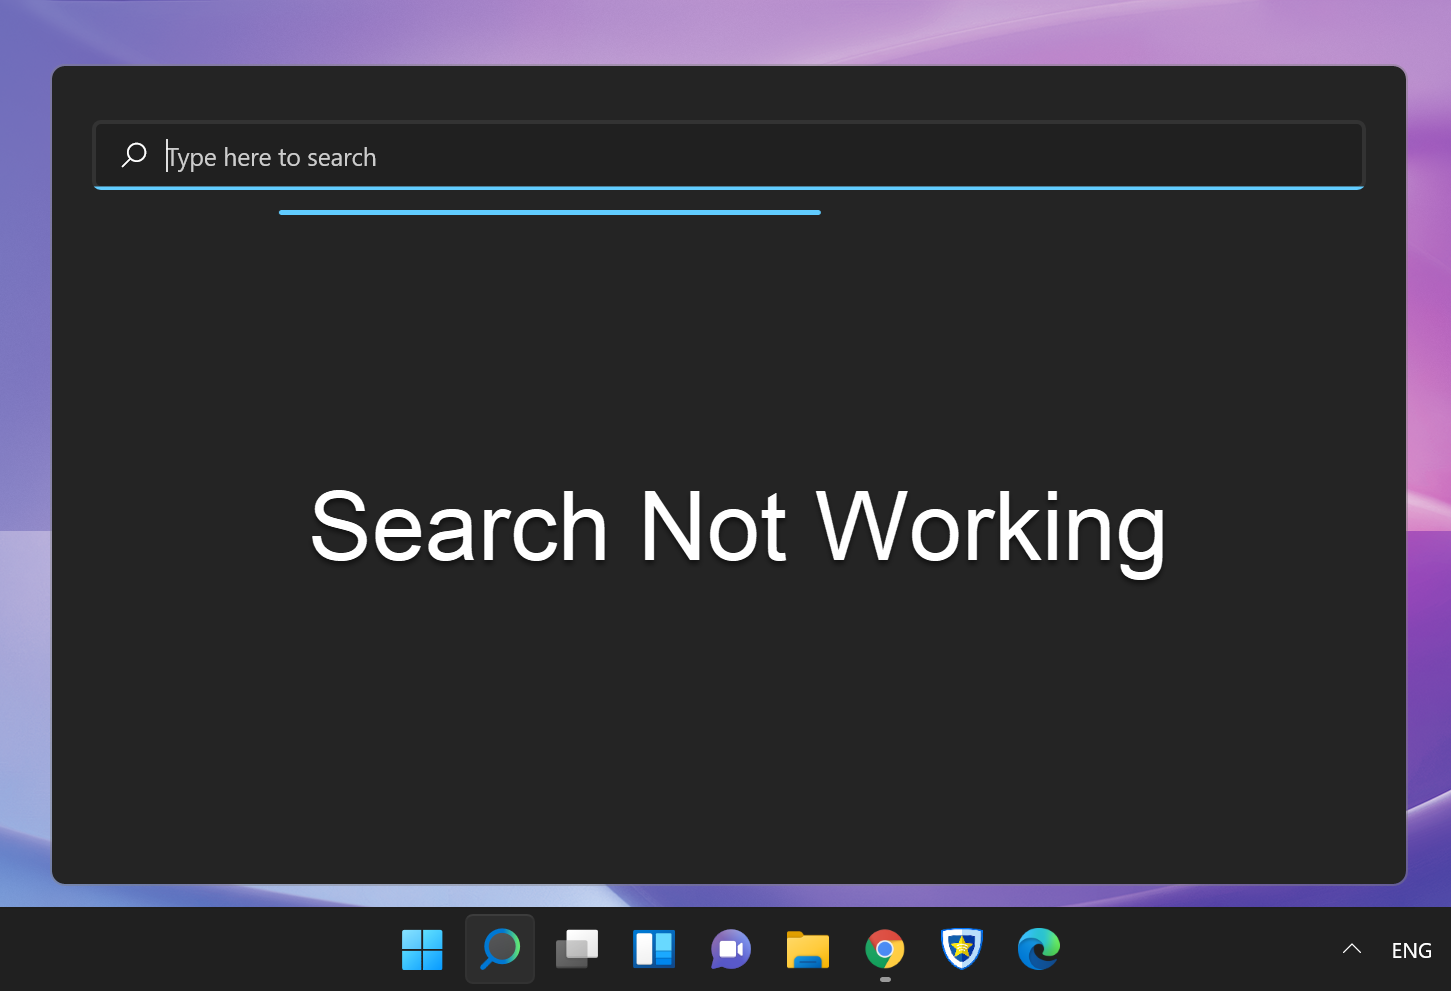 Search Running without Any Results